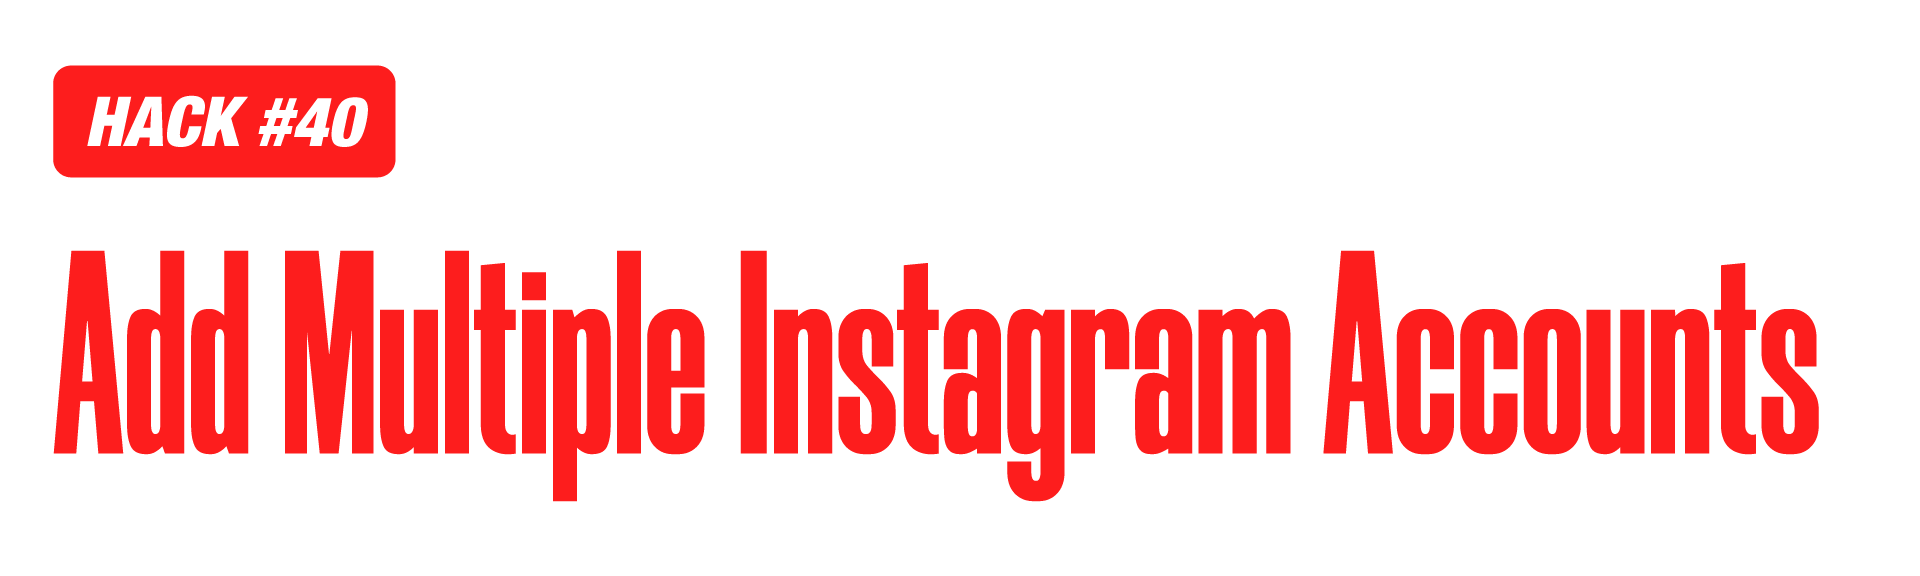 Instagram marketing hack of adding multiple instagram accounts